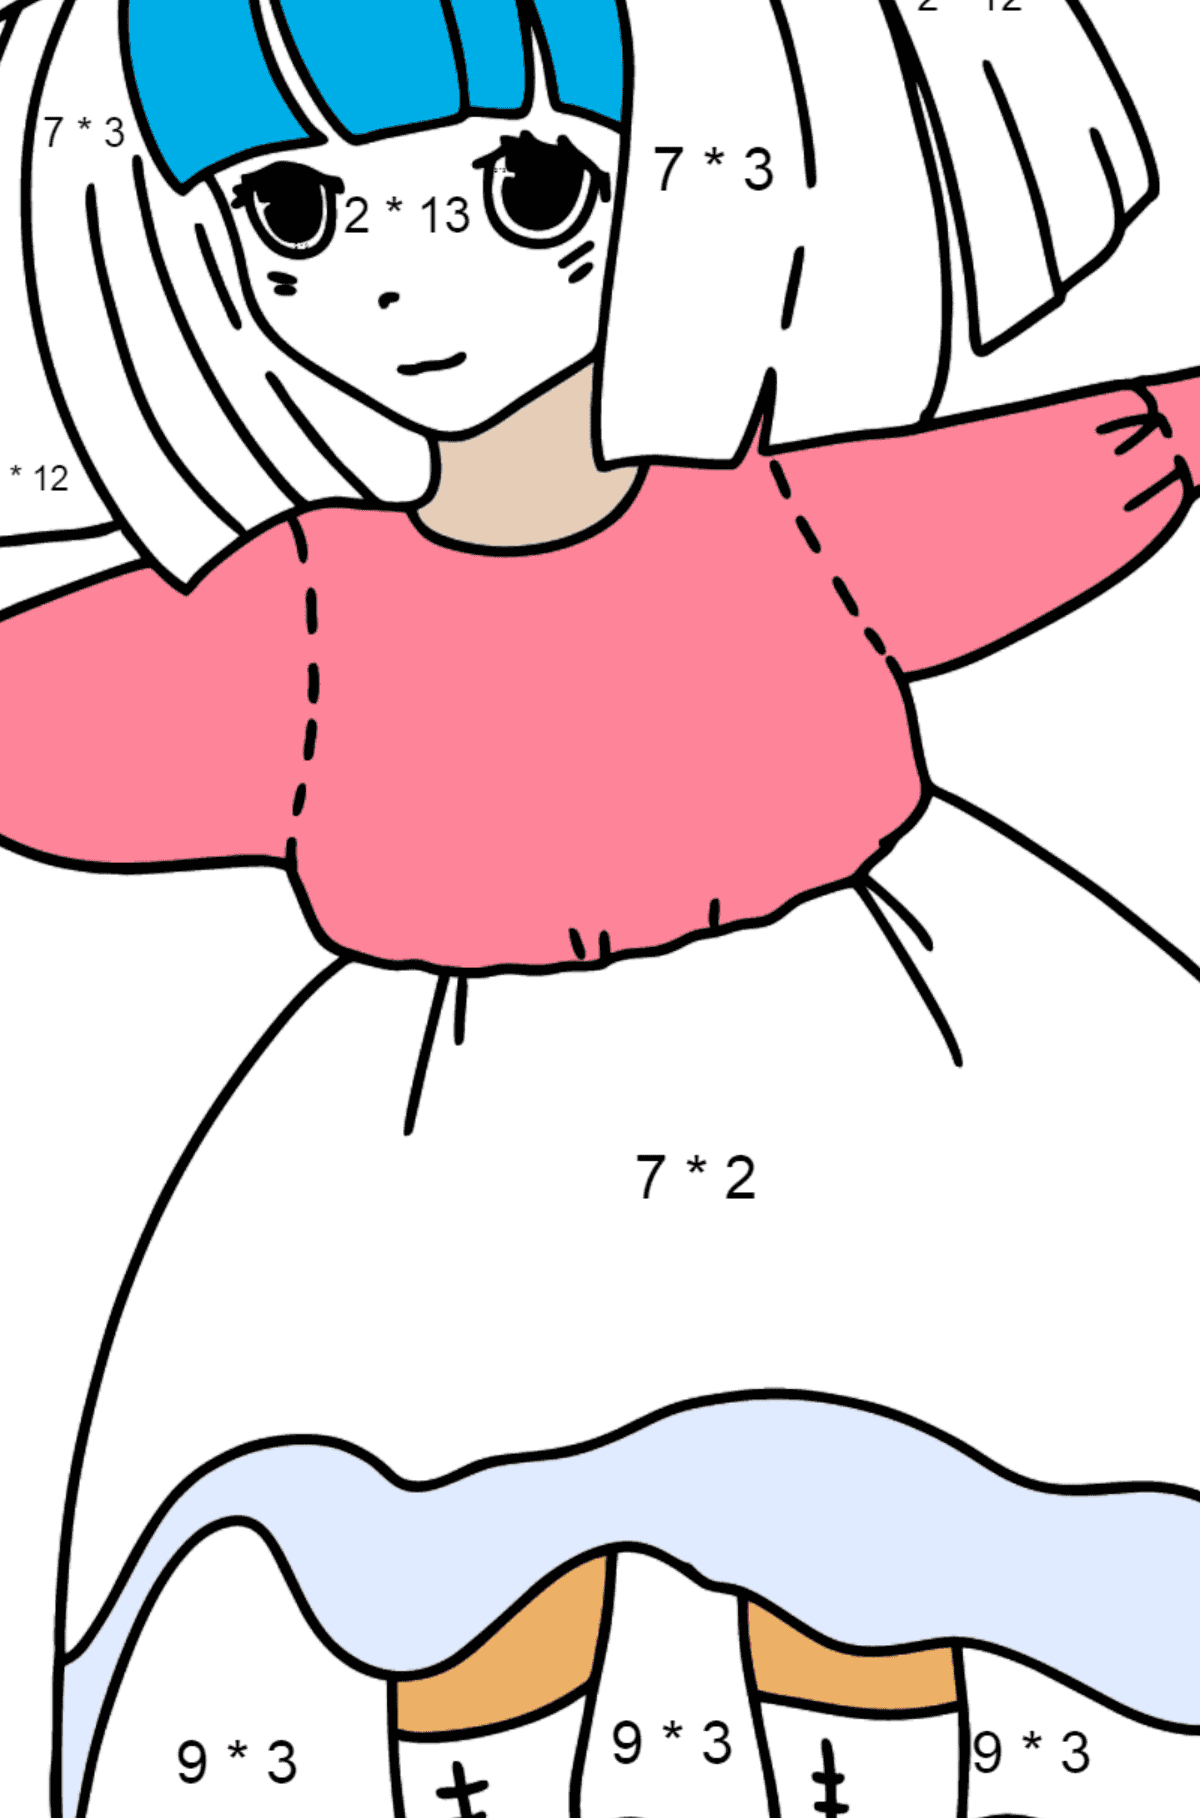 Anime Girl Dancing coloring page - Math Coloring - Multiplication for Kids